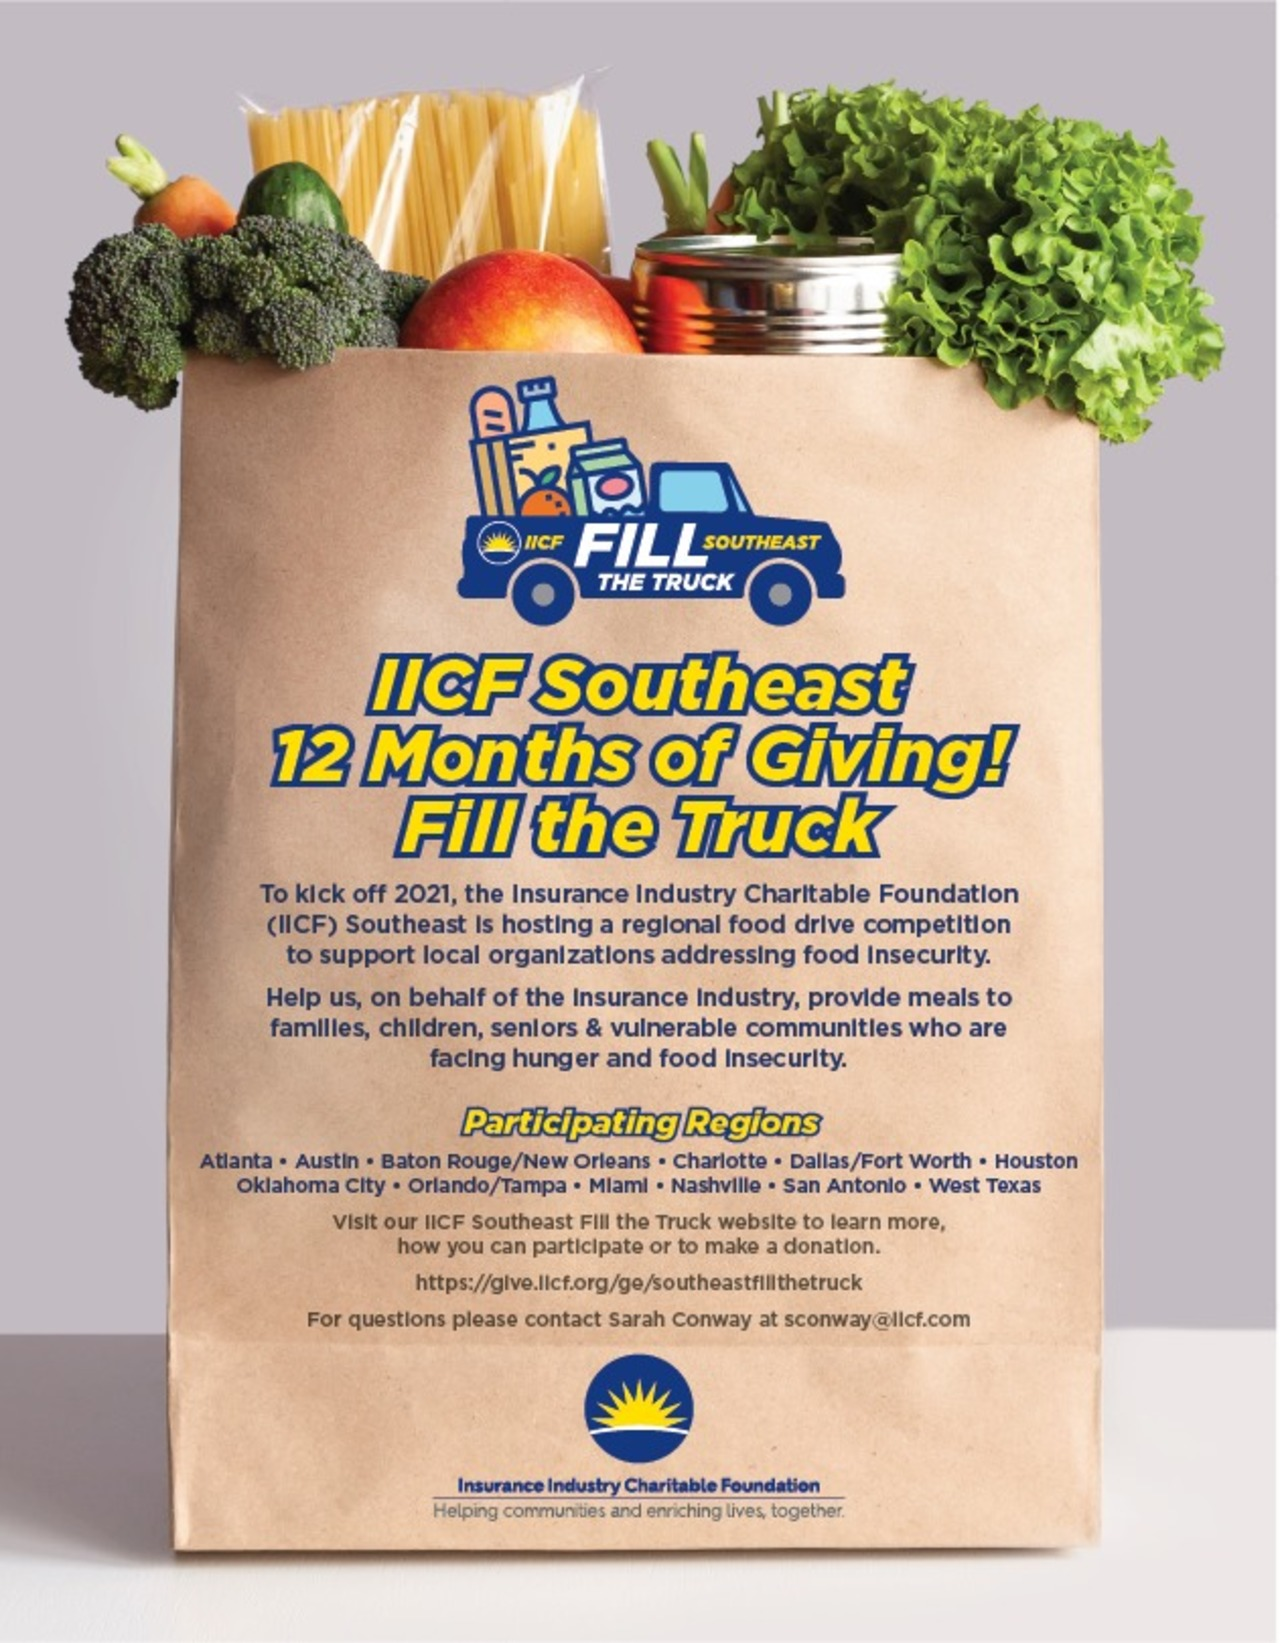 IICF Southeast 12 Months of Giving Fill the Truck Campaign